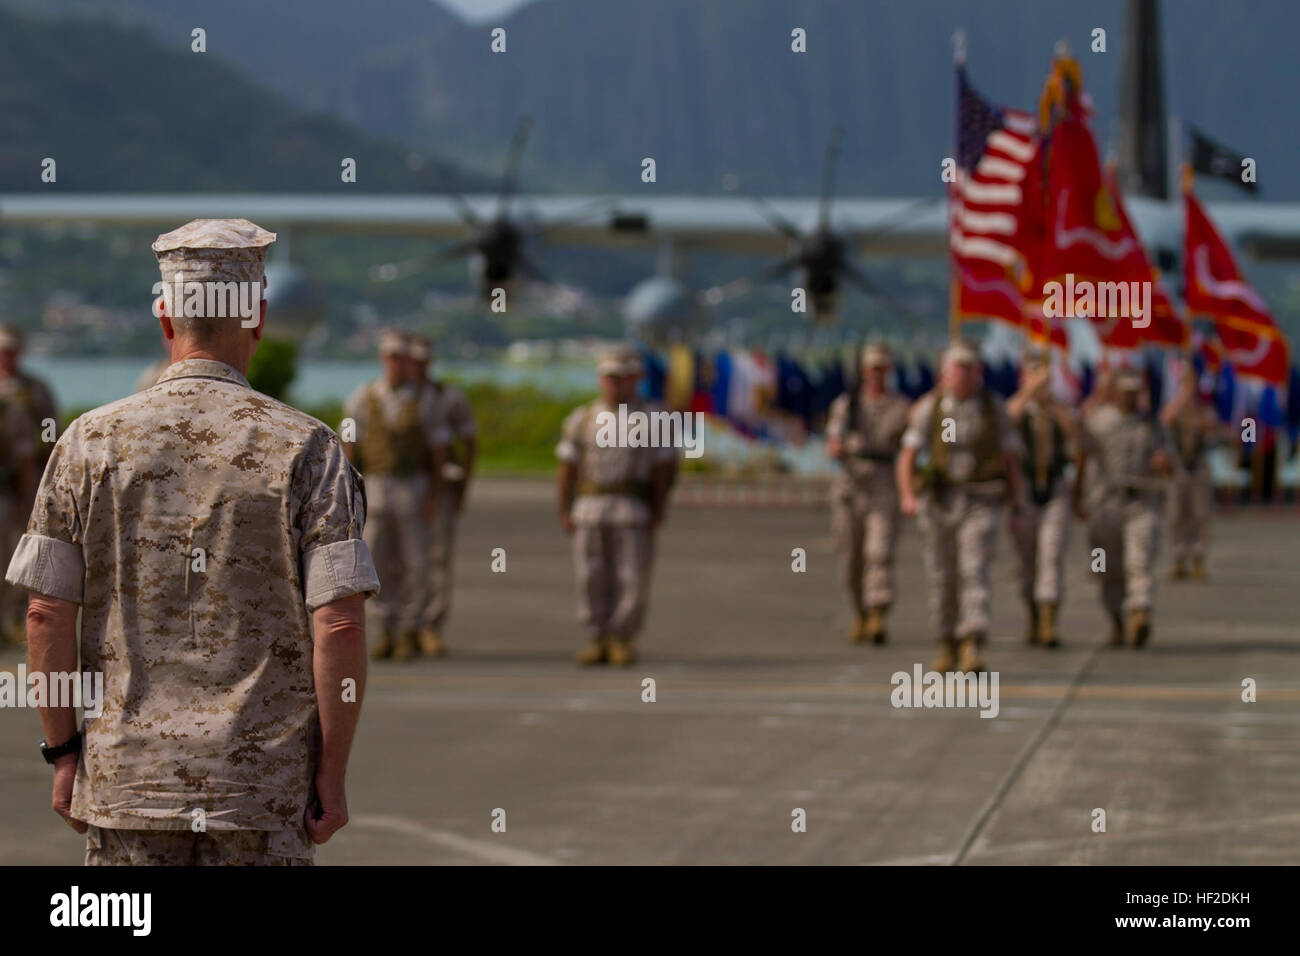 U.S. Marine Corps Gen. James F. Amos, commandant of the Marine Corps, stands at attention during the U.S. Marine Stock Photo